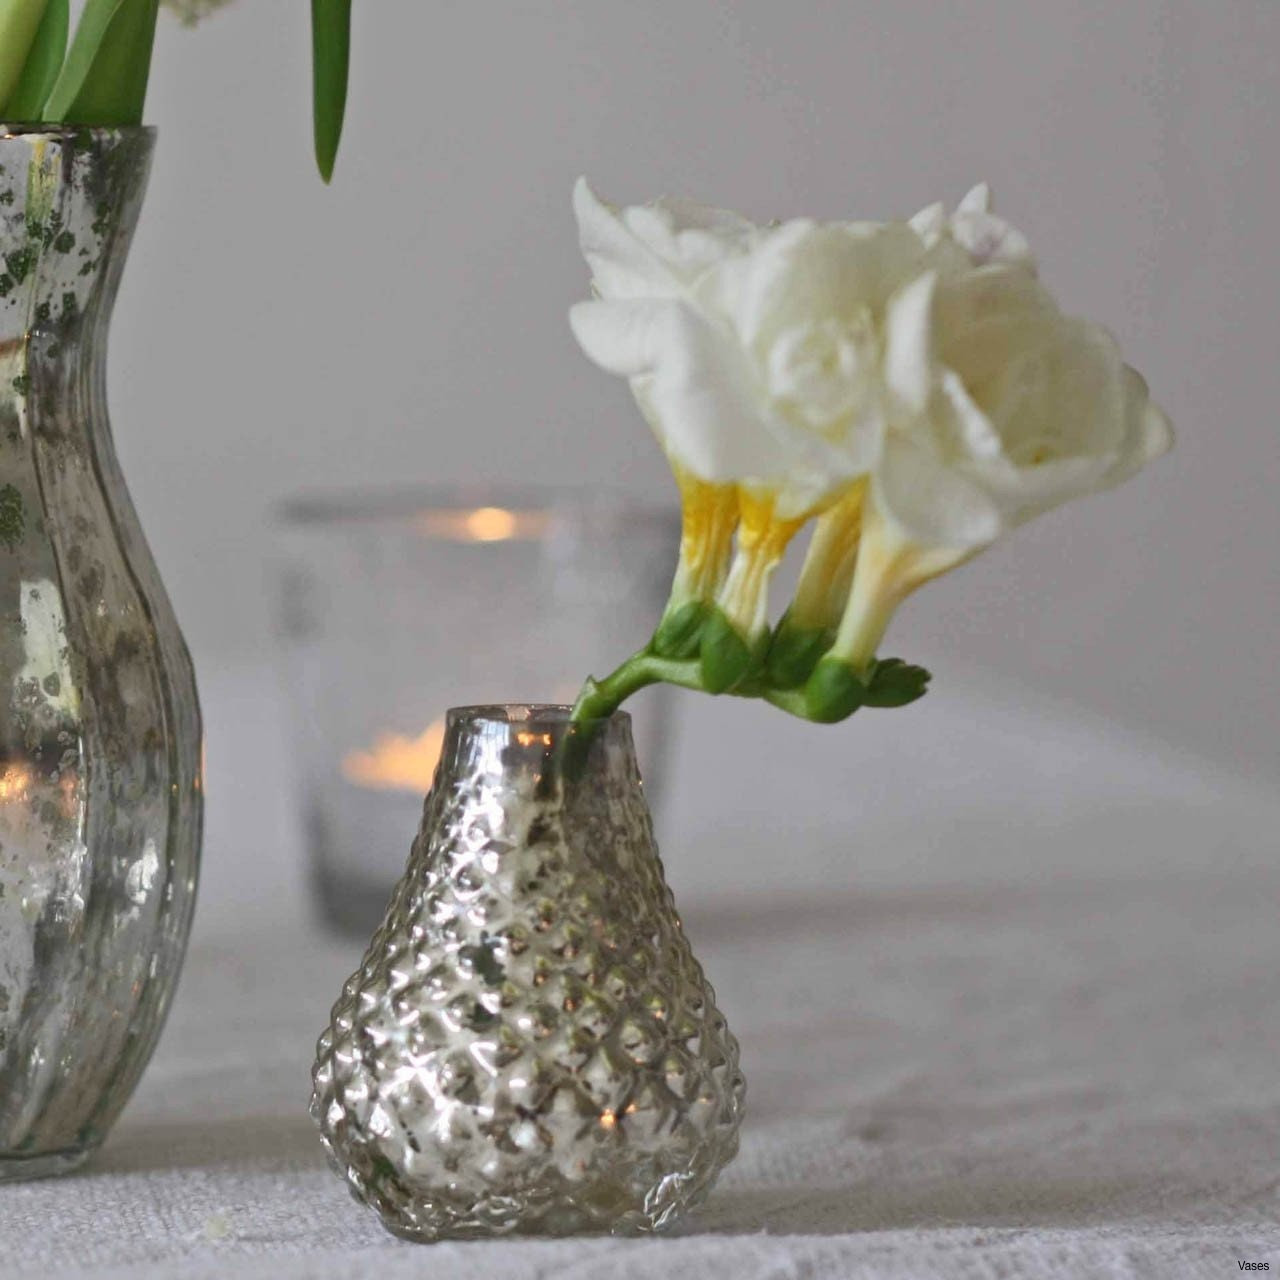 gold vases for wedding centerpieces of lovely life flowers image lovely jar flower 1h vases bud wedding intended for jar flower 1h vases bud wedding vase centerpiece idea i 0d design